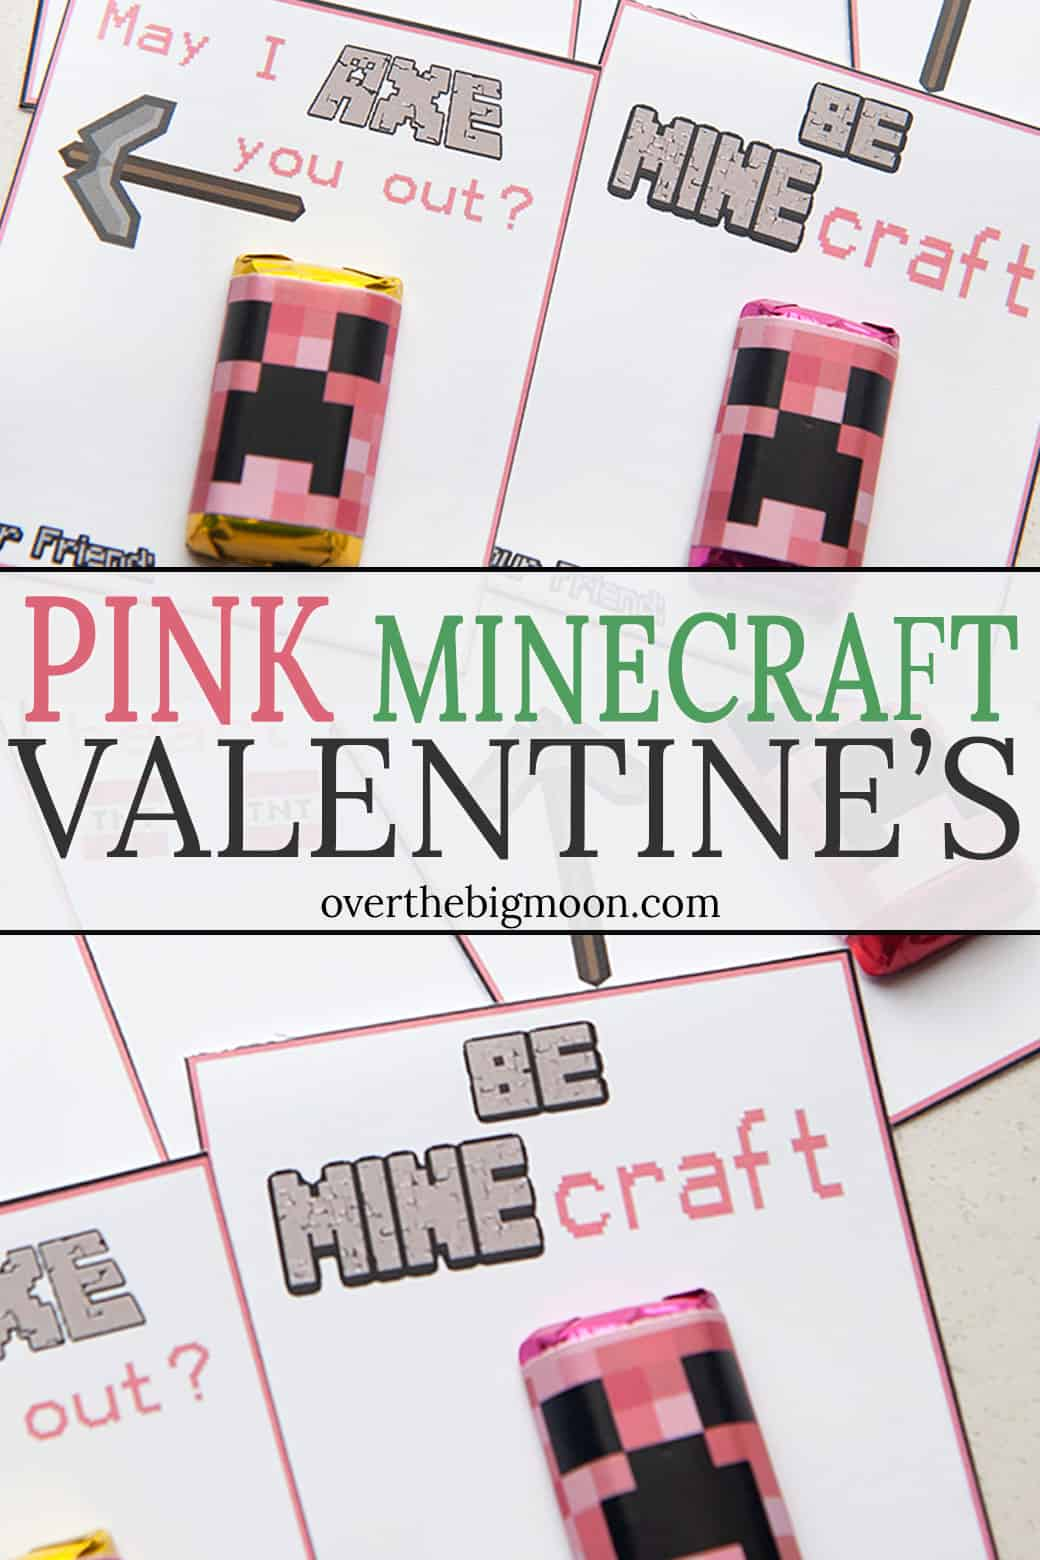 Minecraft Printable Valentine's in PINK! These pair perfectly with our GREEN Minecraft Printable Valentine's! Just print, attach a small candy and you're good to go! From overthebigmoon.com!